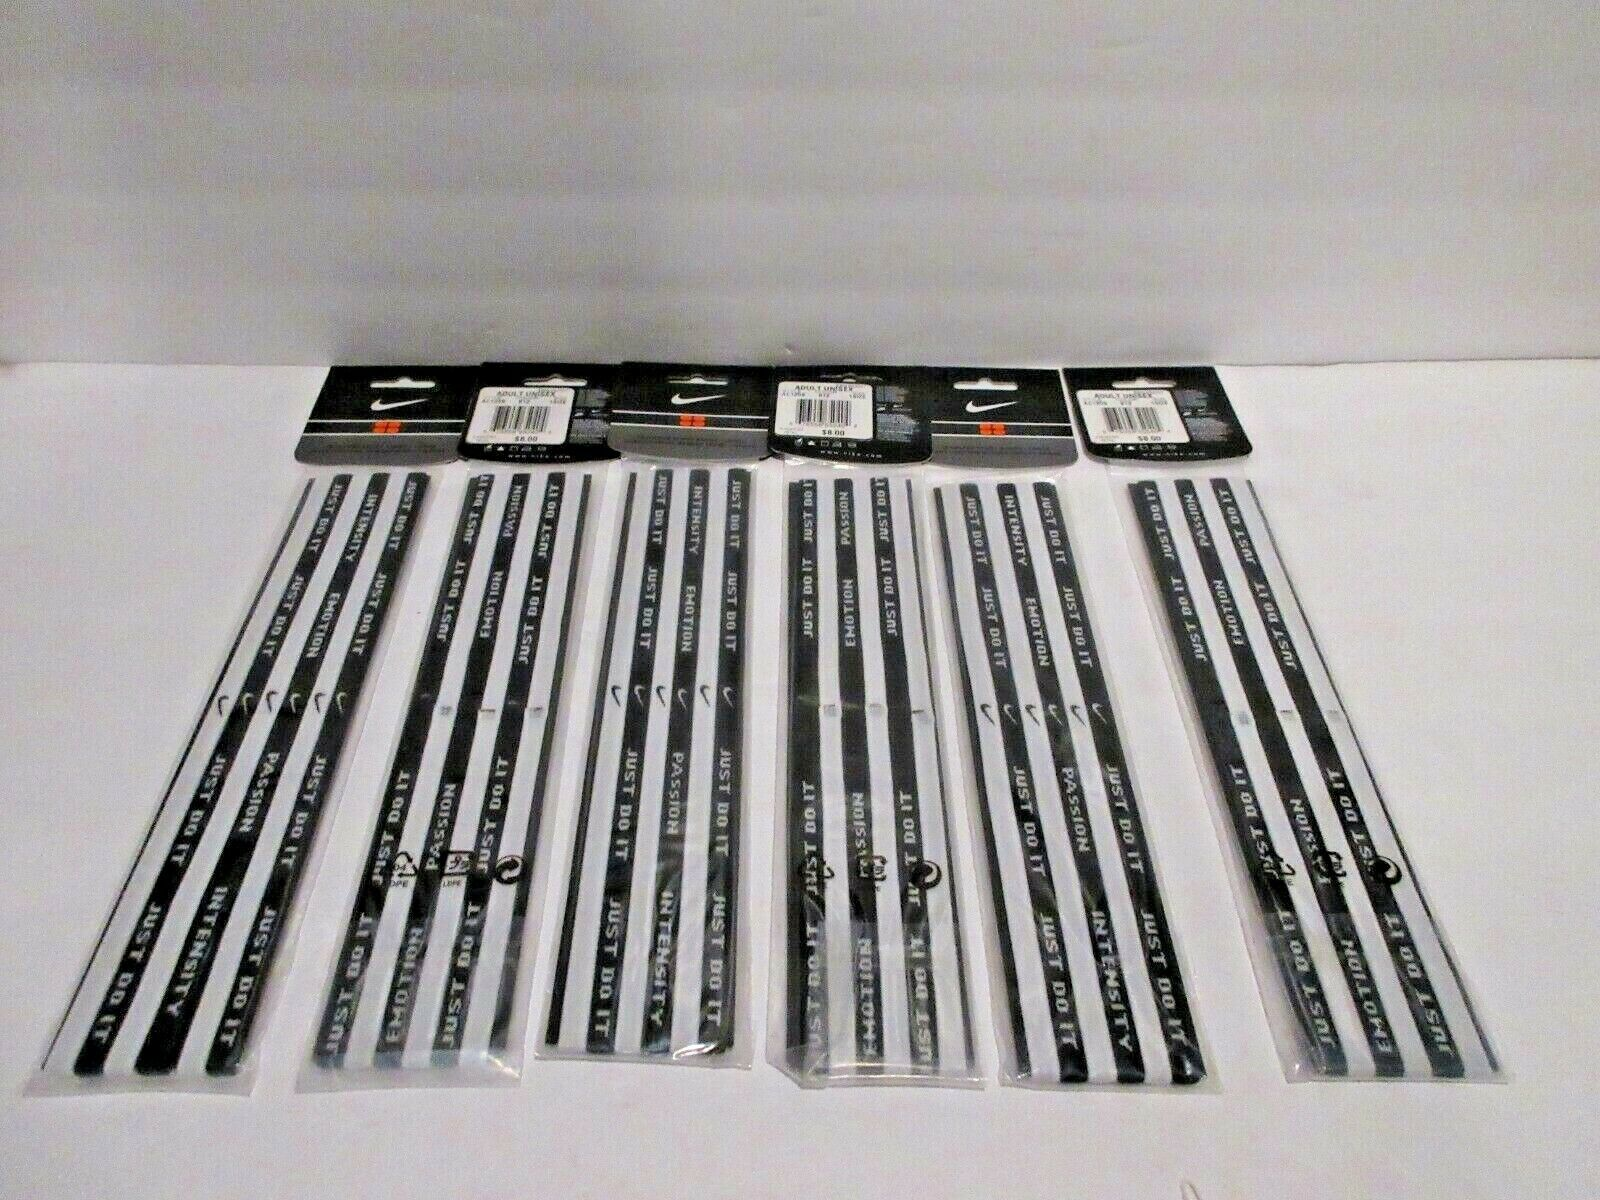 Nike Seamless Wide Sport Bands Just Do It Adult Unisex Large Black & White Lot 6